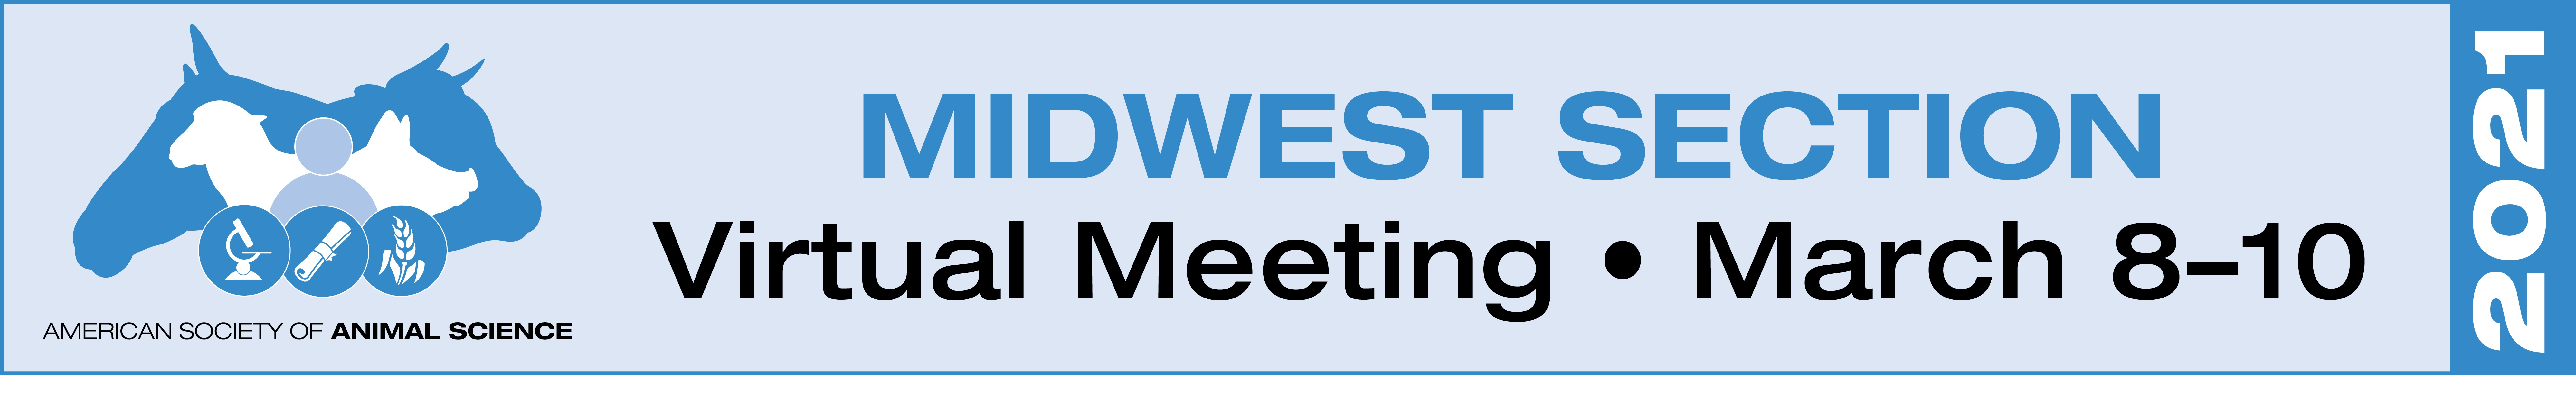 2021 ASAS Midwest Meeting